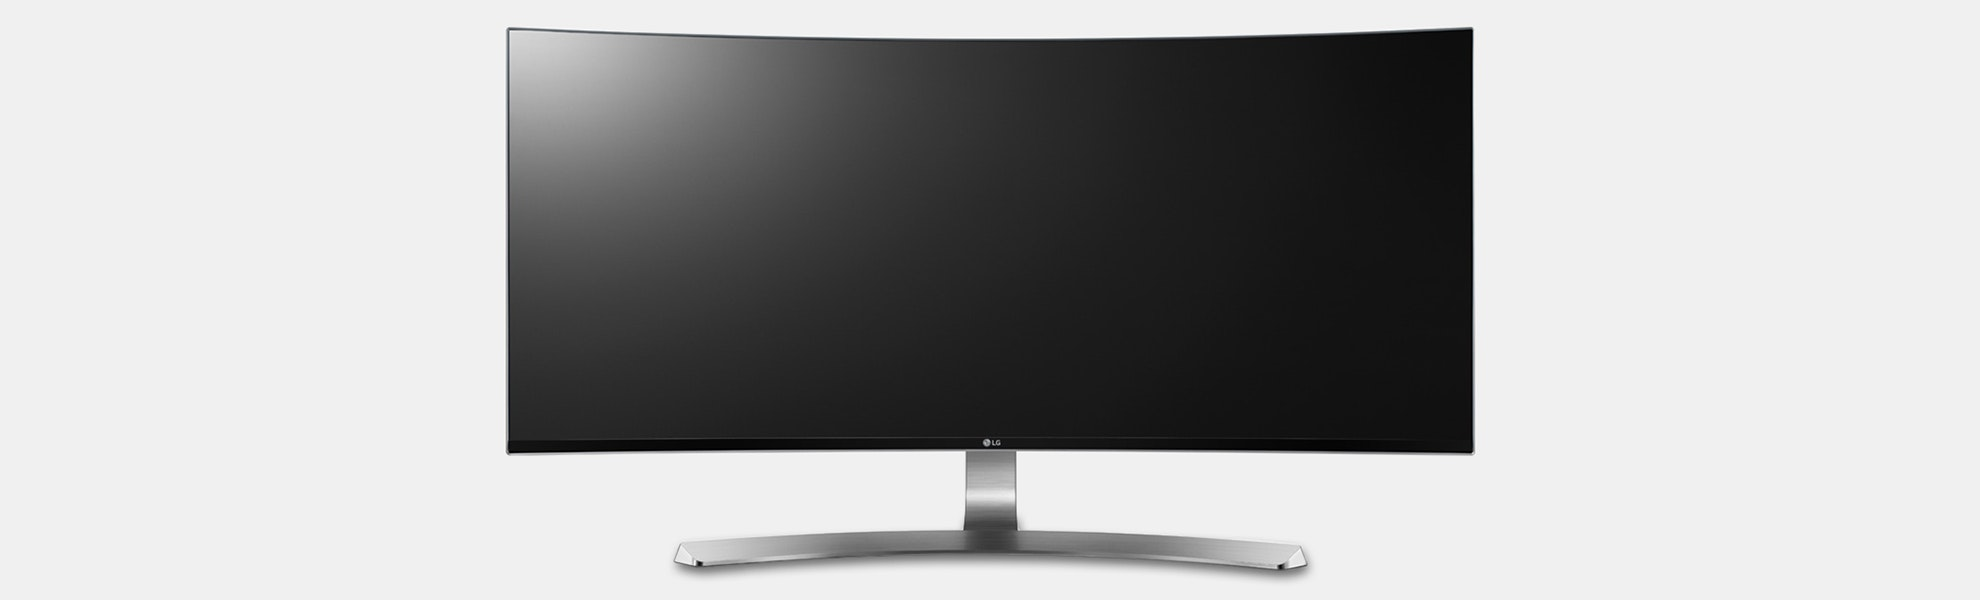 "LG 34"" Curved Ultrawide WQHD IPS Monitor 34UC98-W"